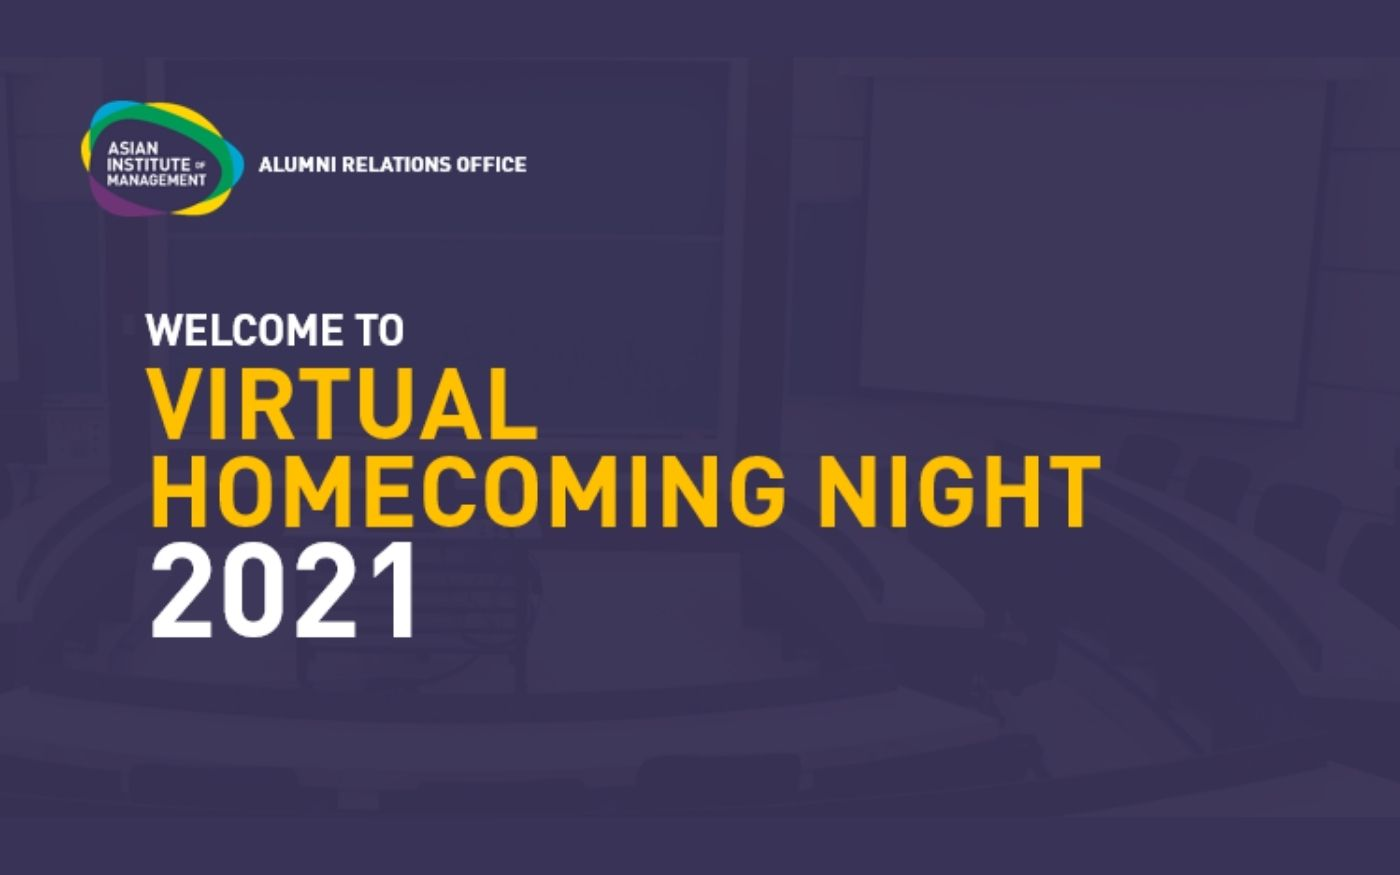 Virtual Homecoming Night 2021